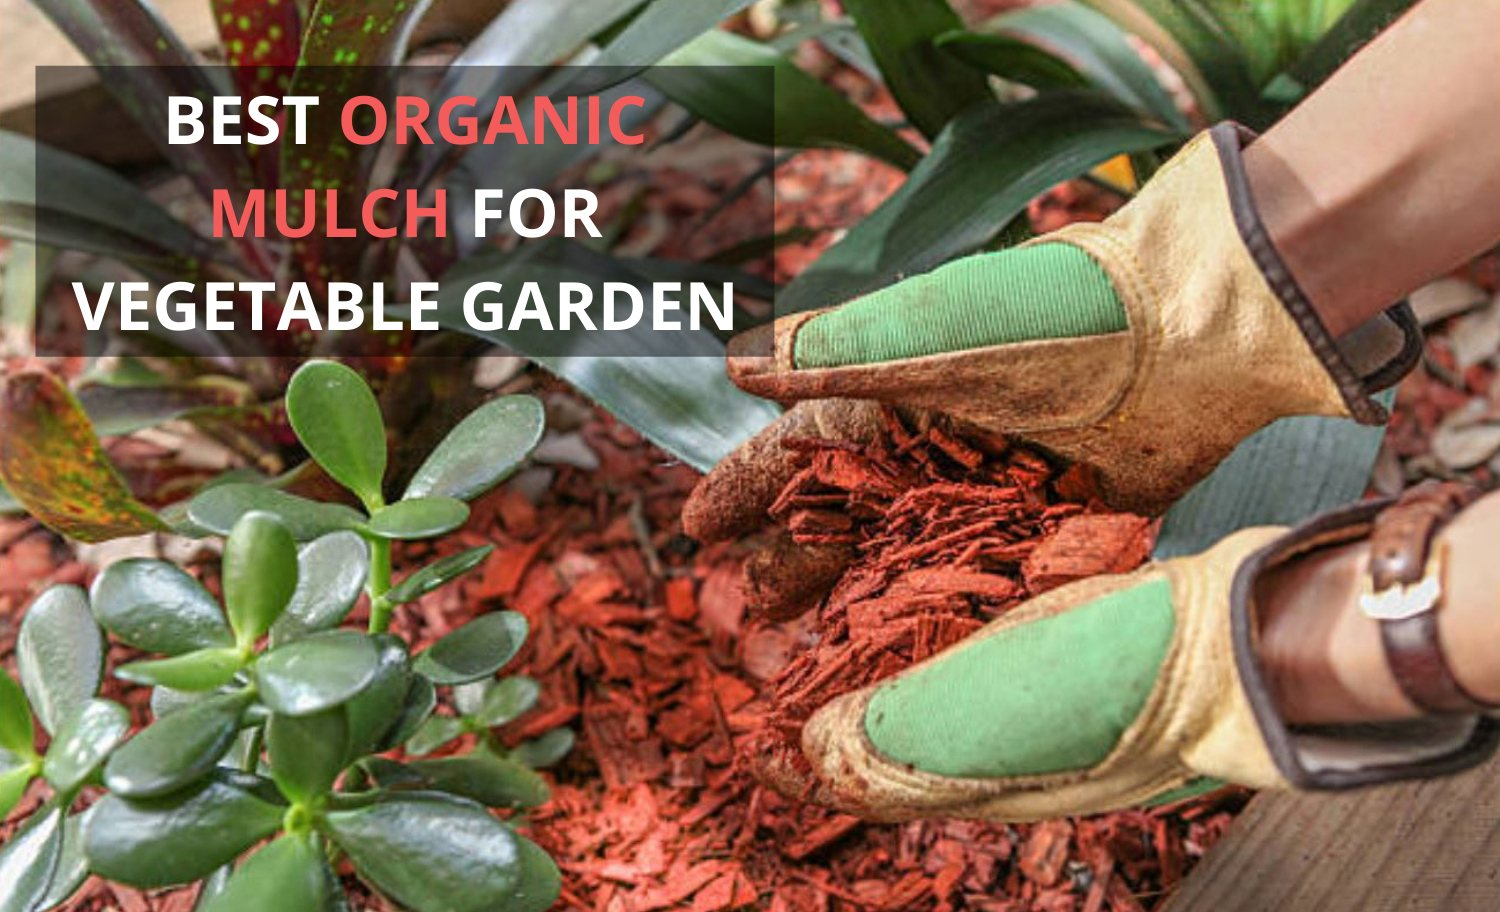 Best Organic Mulch for Vegetable Garden